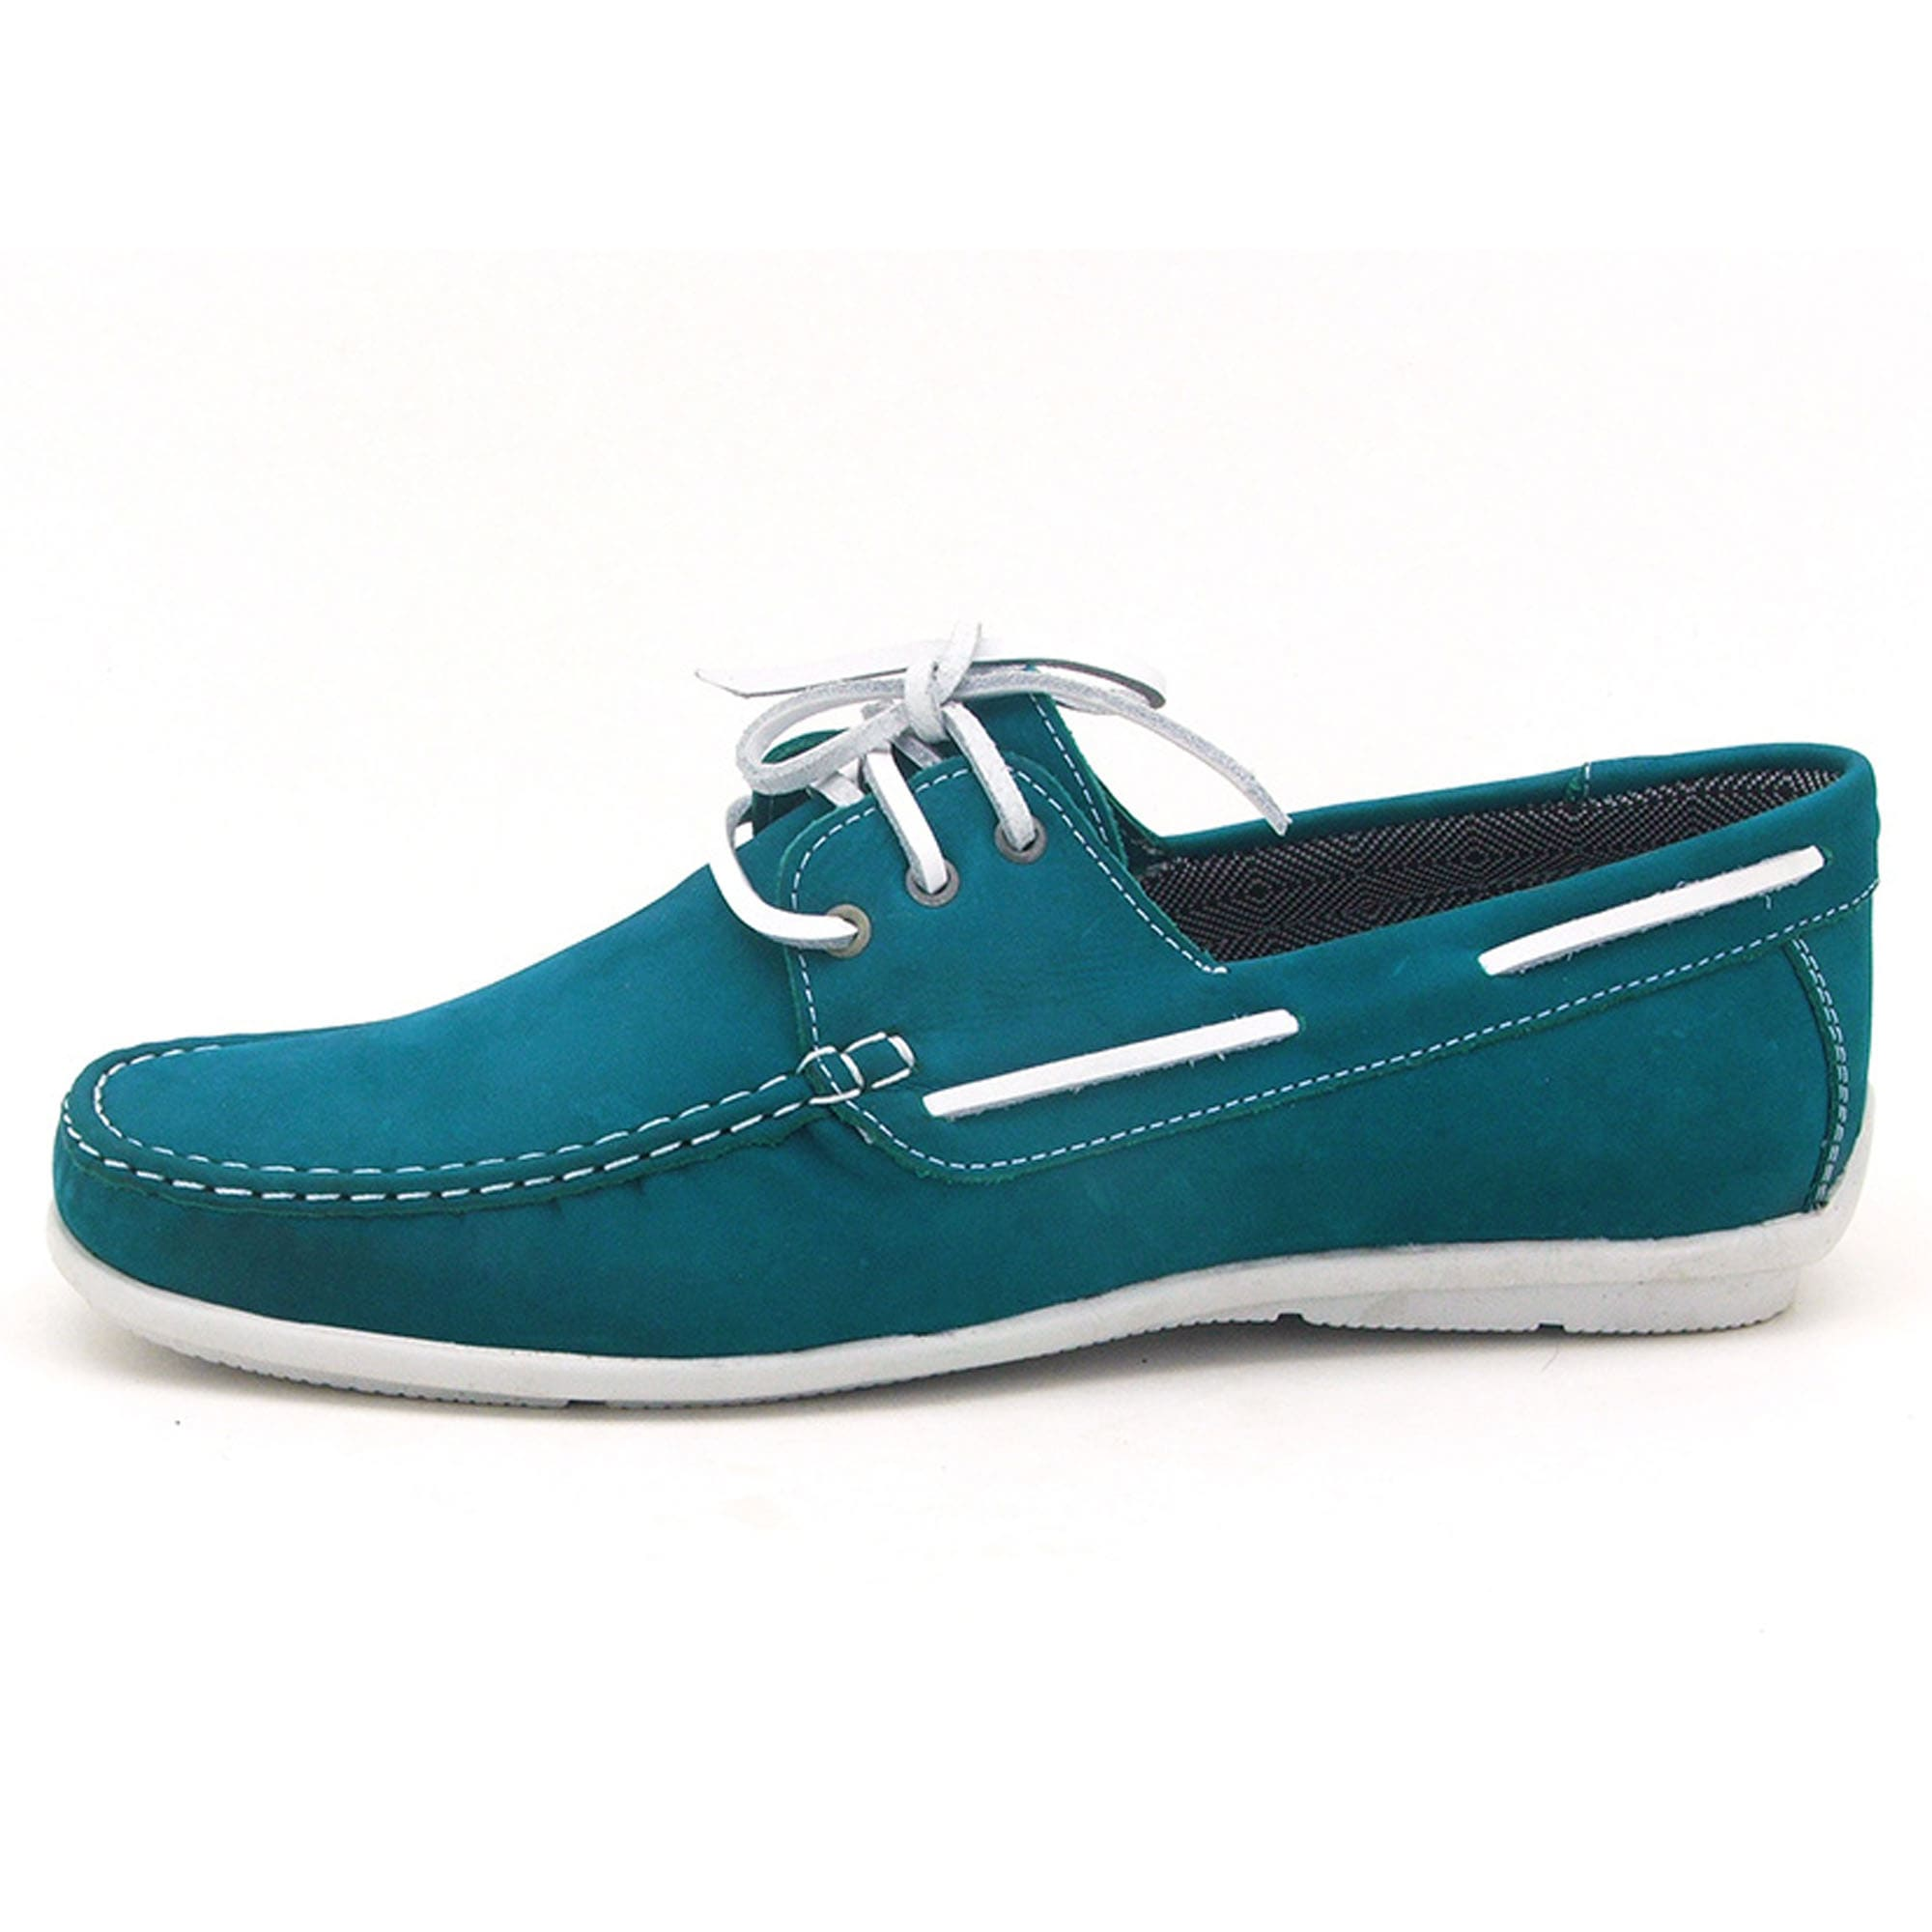 Mocassim dockside masculino Atron Shoes azul 572